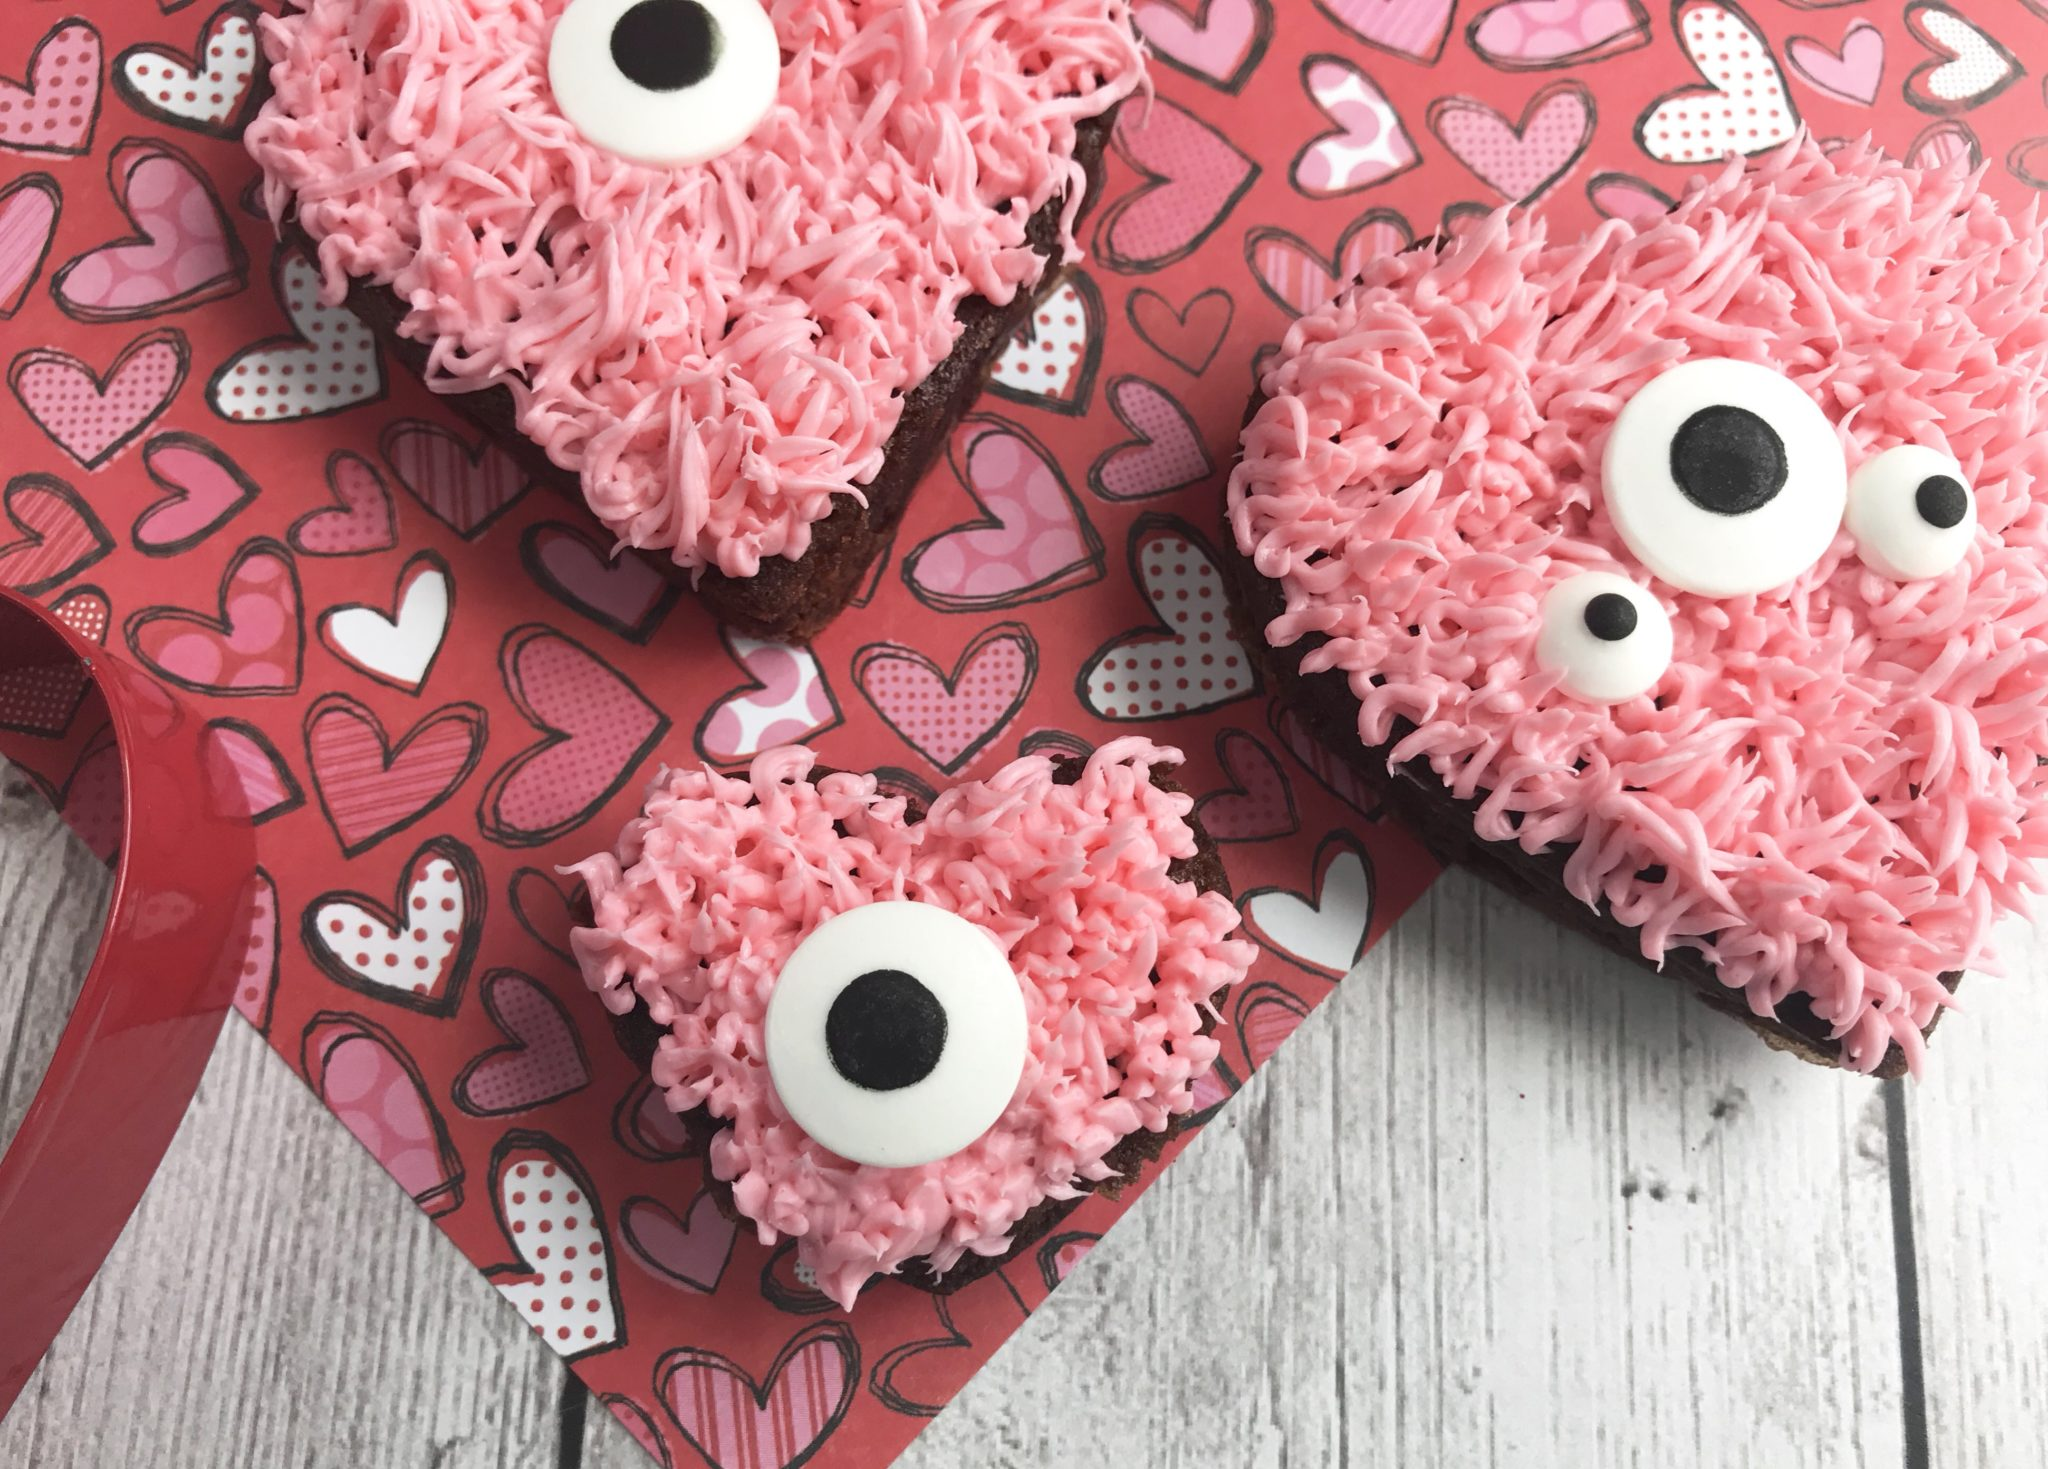 Celebrate Valentine's Day with Some Monster Brownies! They are easy to make & decorate and are a super fun way to celebrate the day with your loved ones.